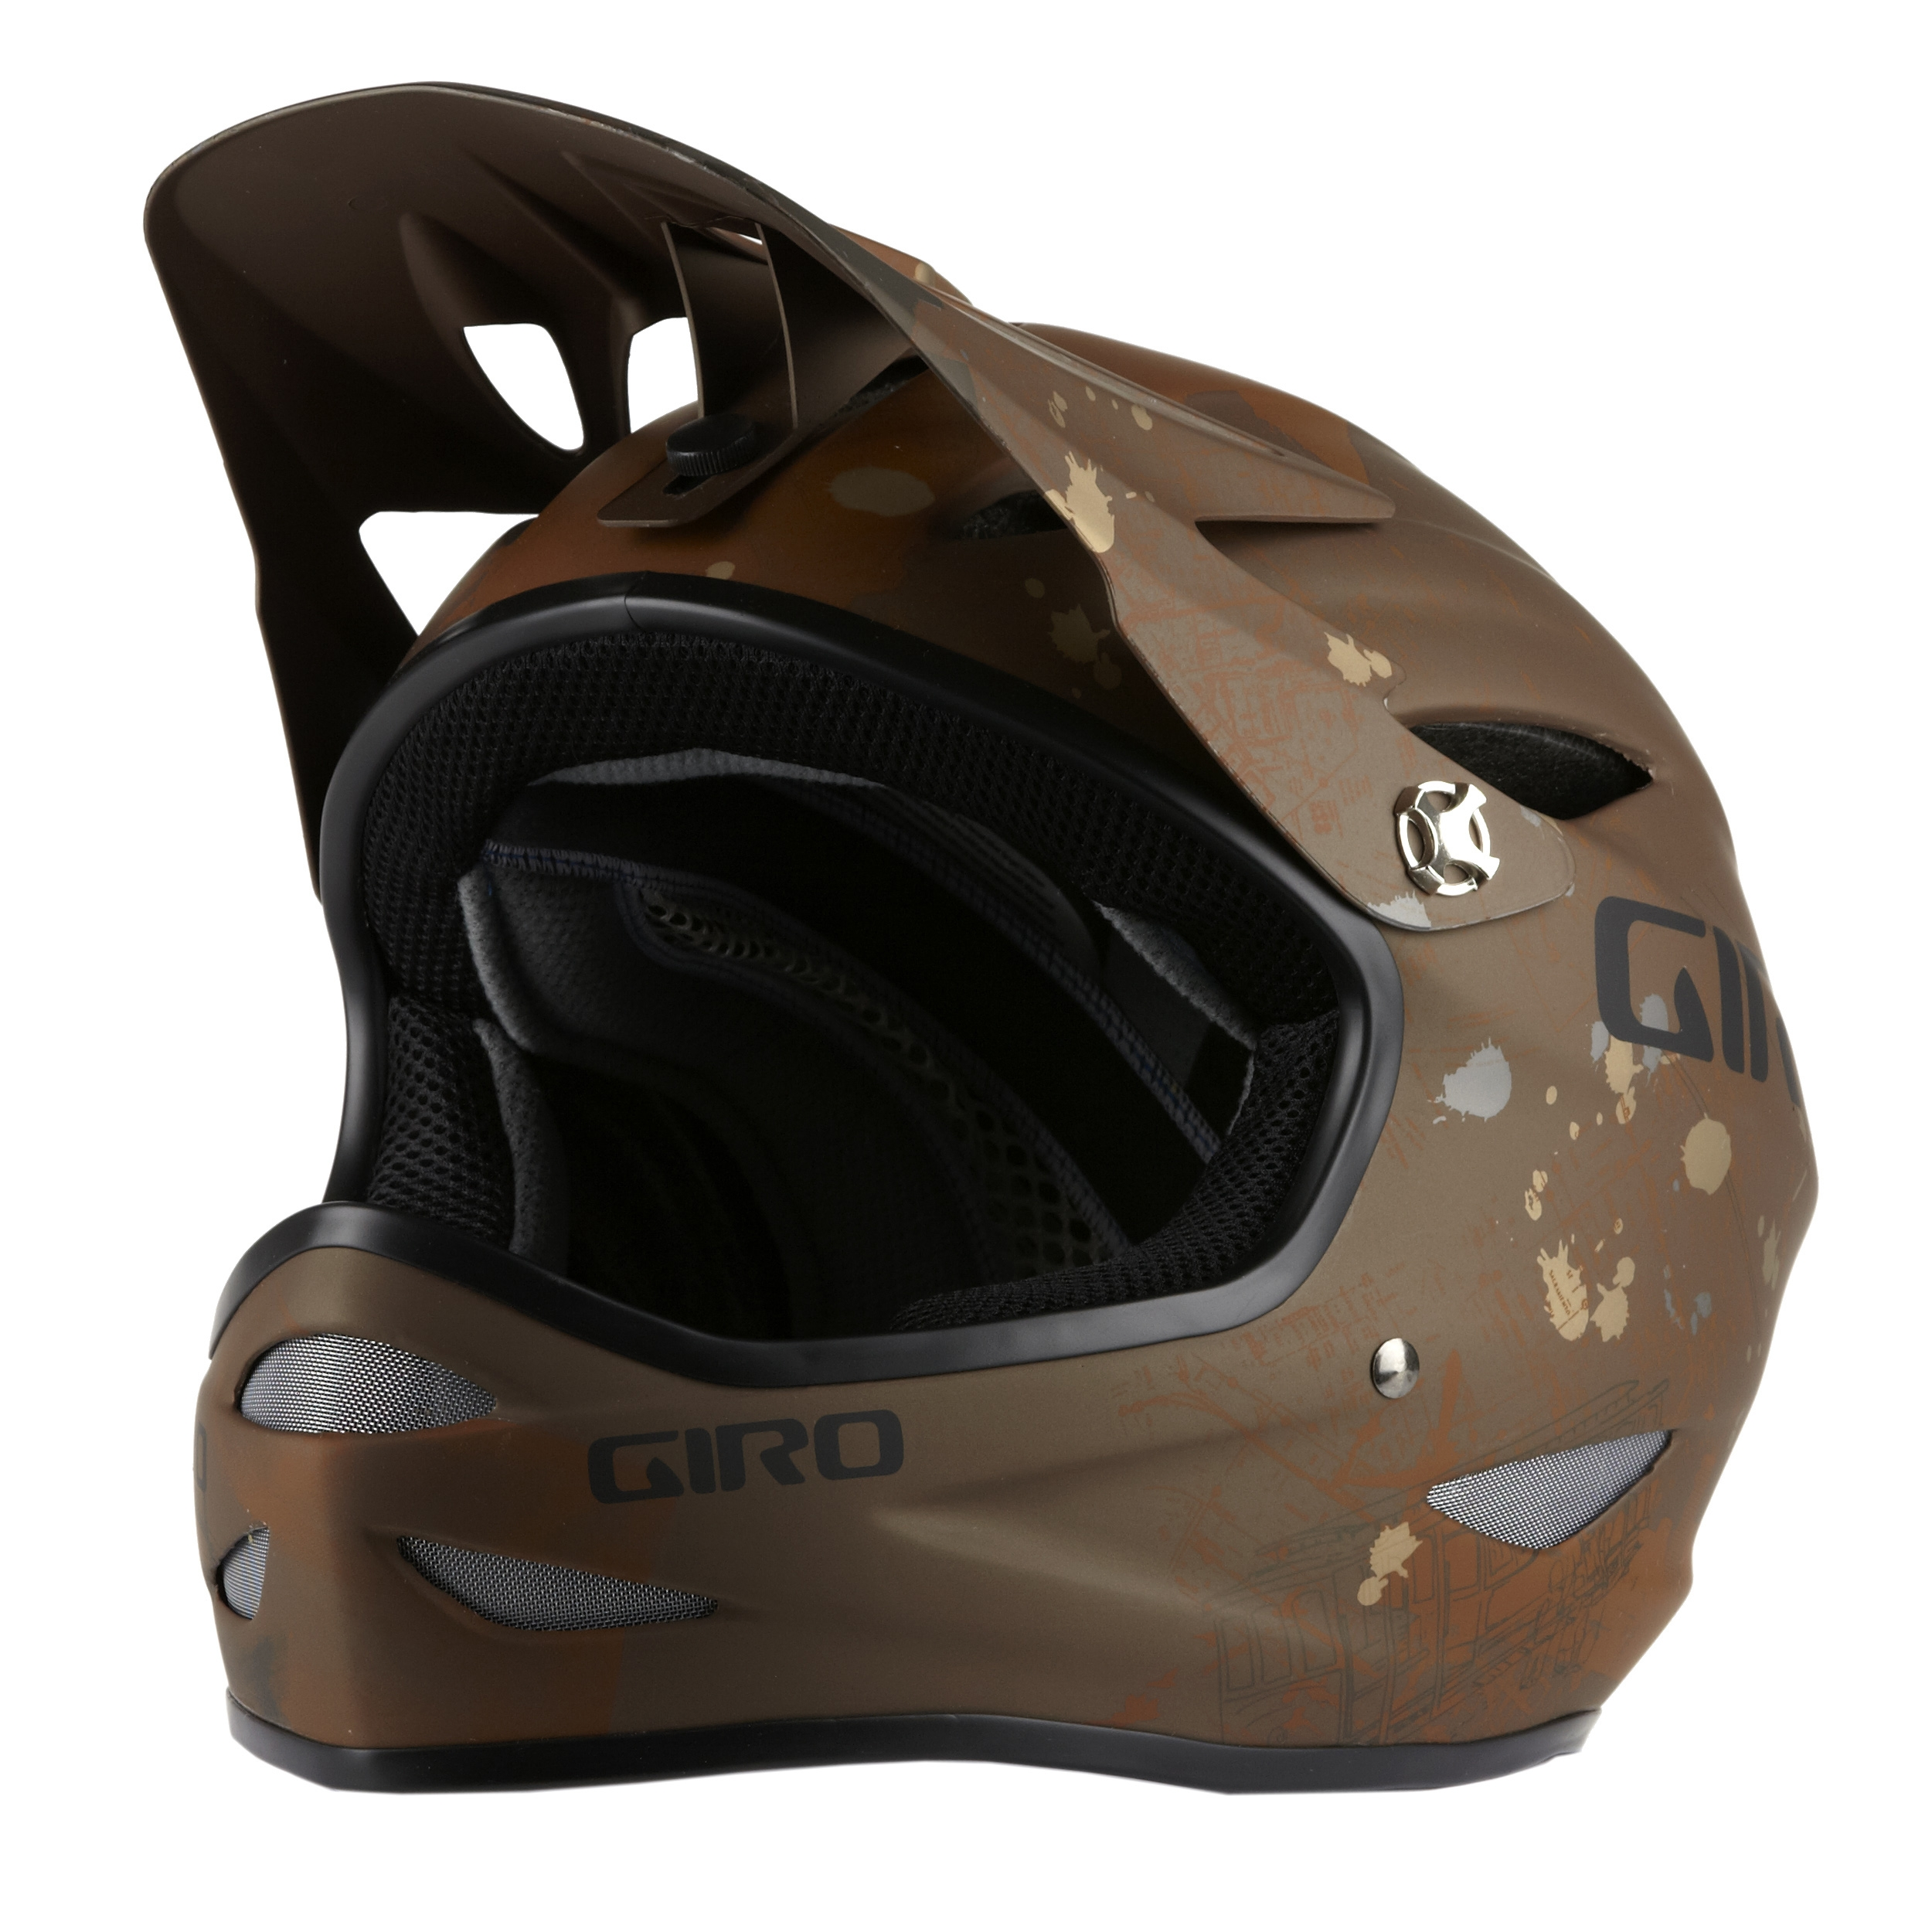 1628-GIRO%20Casque%20REMEDY%20Matte%20Sm